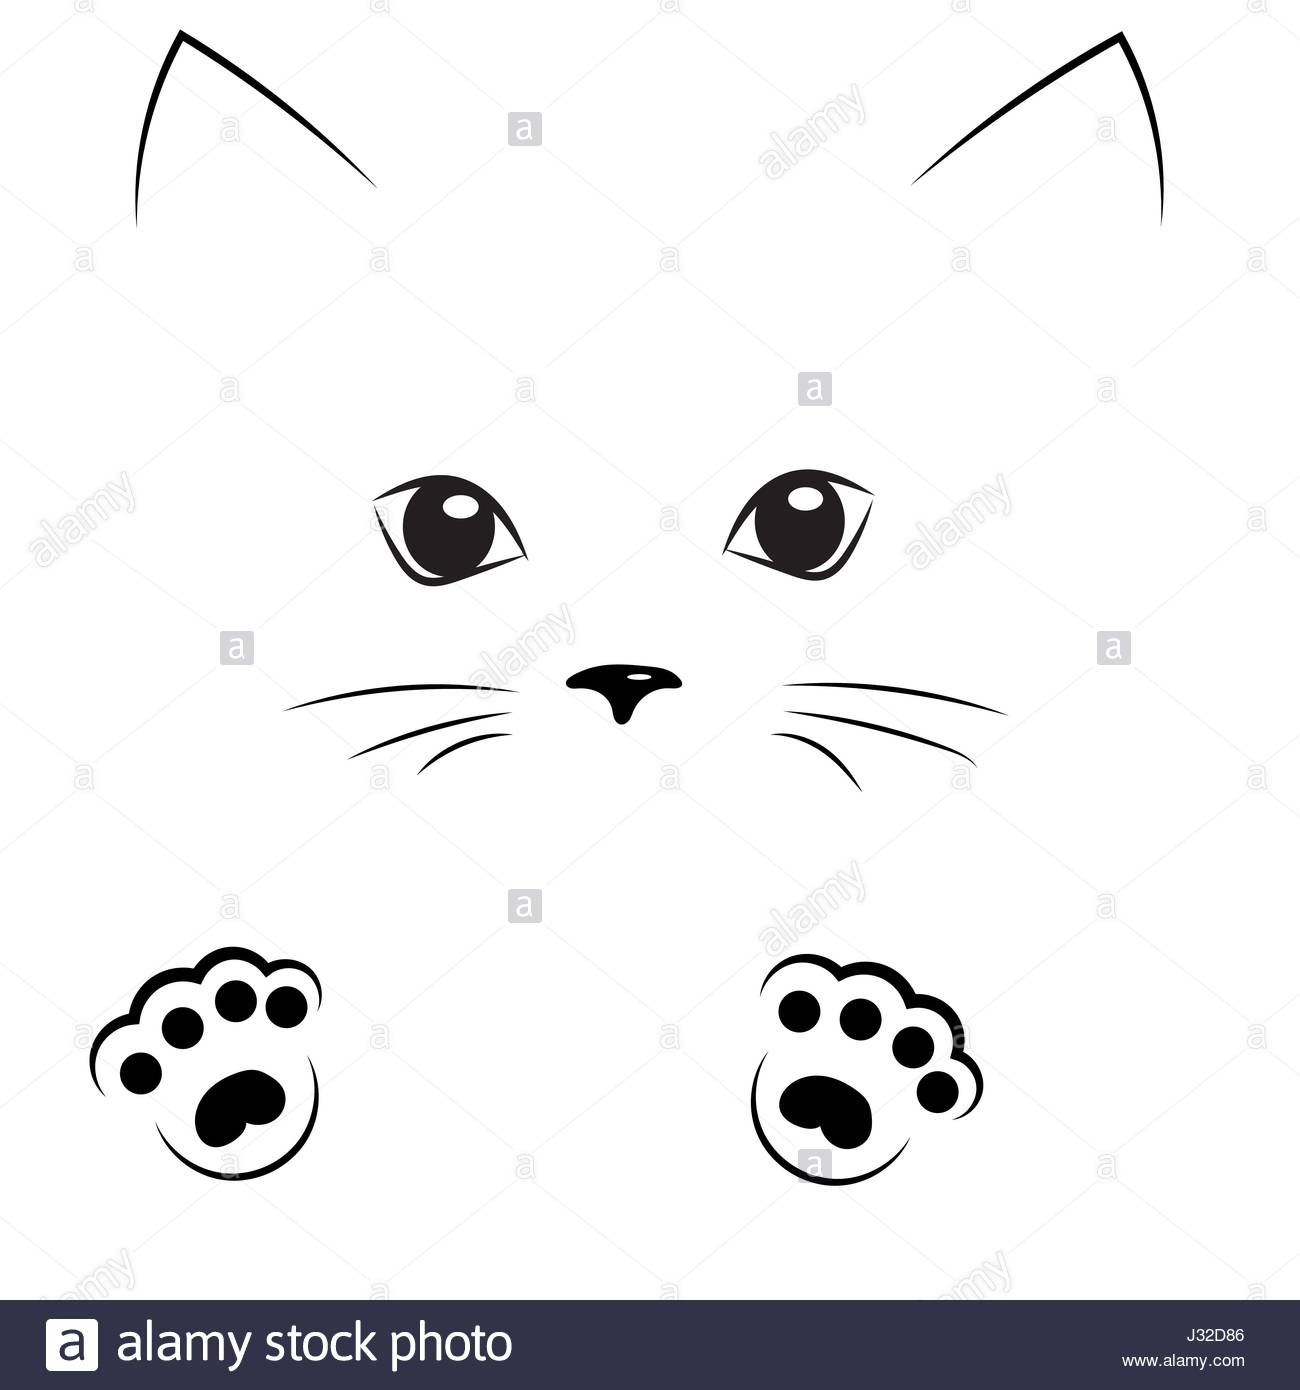 1300x1390 Monumental Outline Of Cat Face Vector Black Drawing With Paws